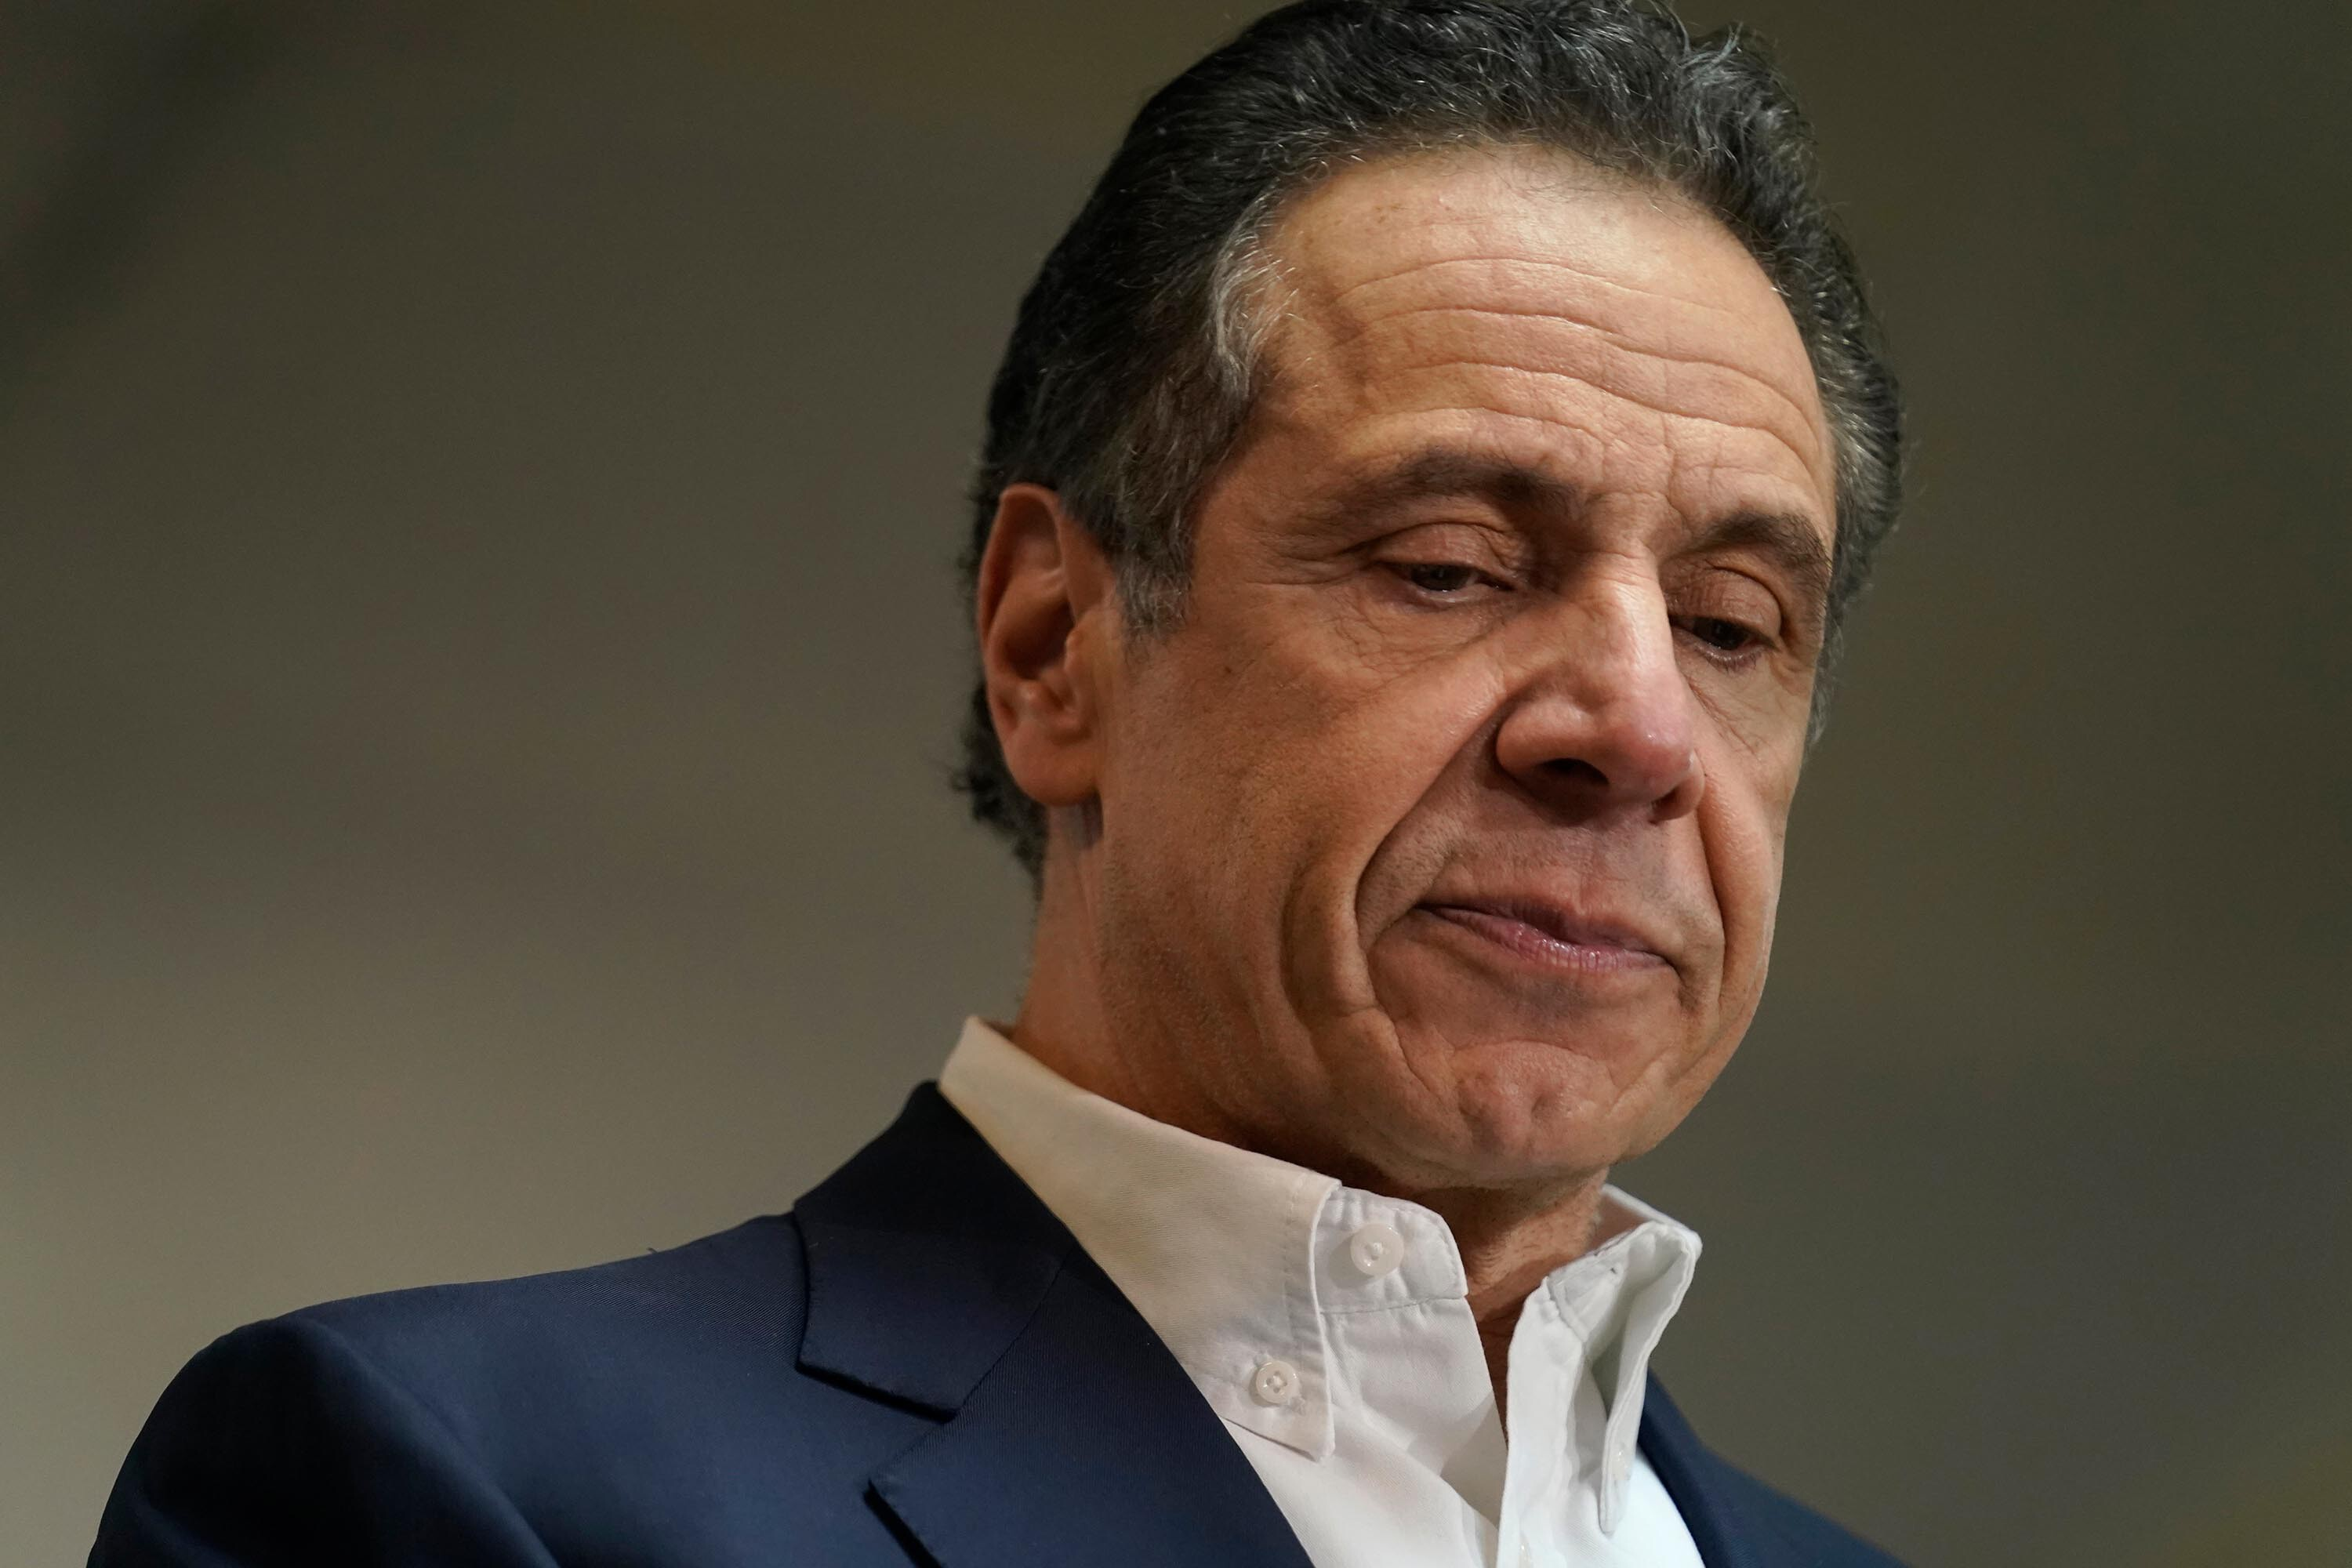 Executive assistant to Andrew Cuomo details allegations of sexual harassment by New York governor